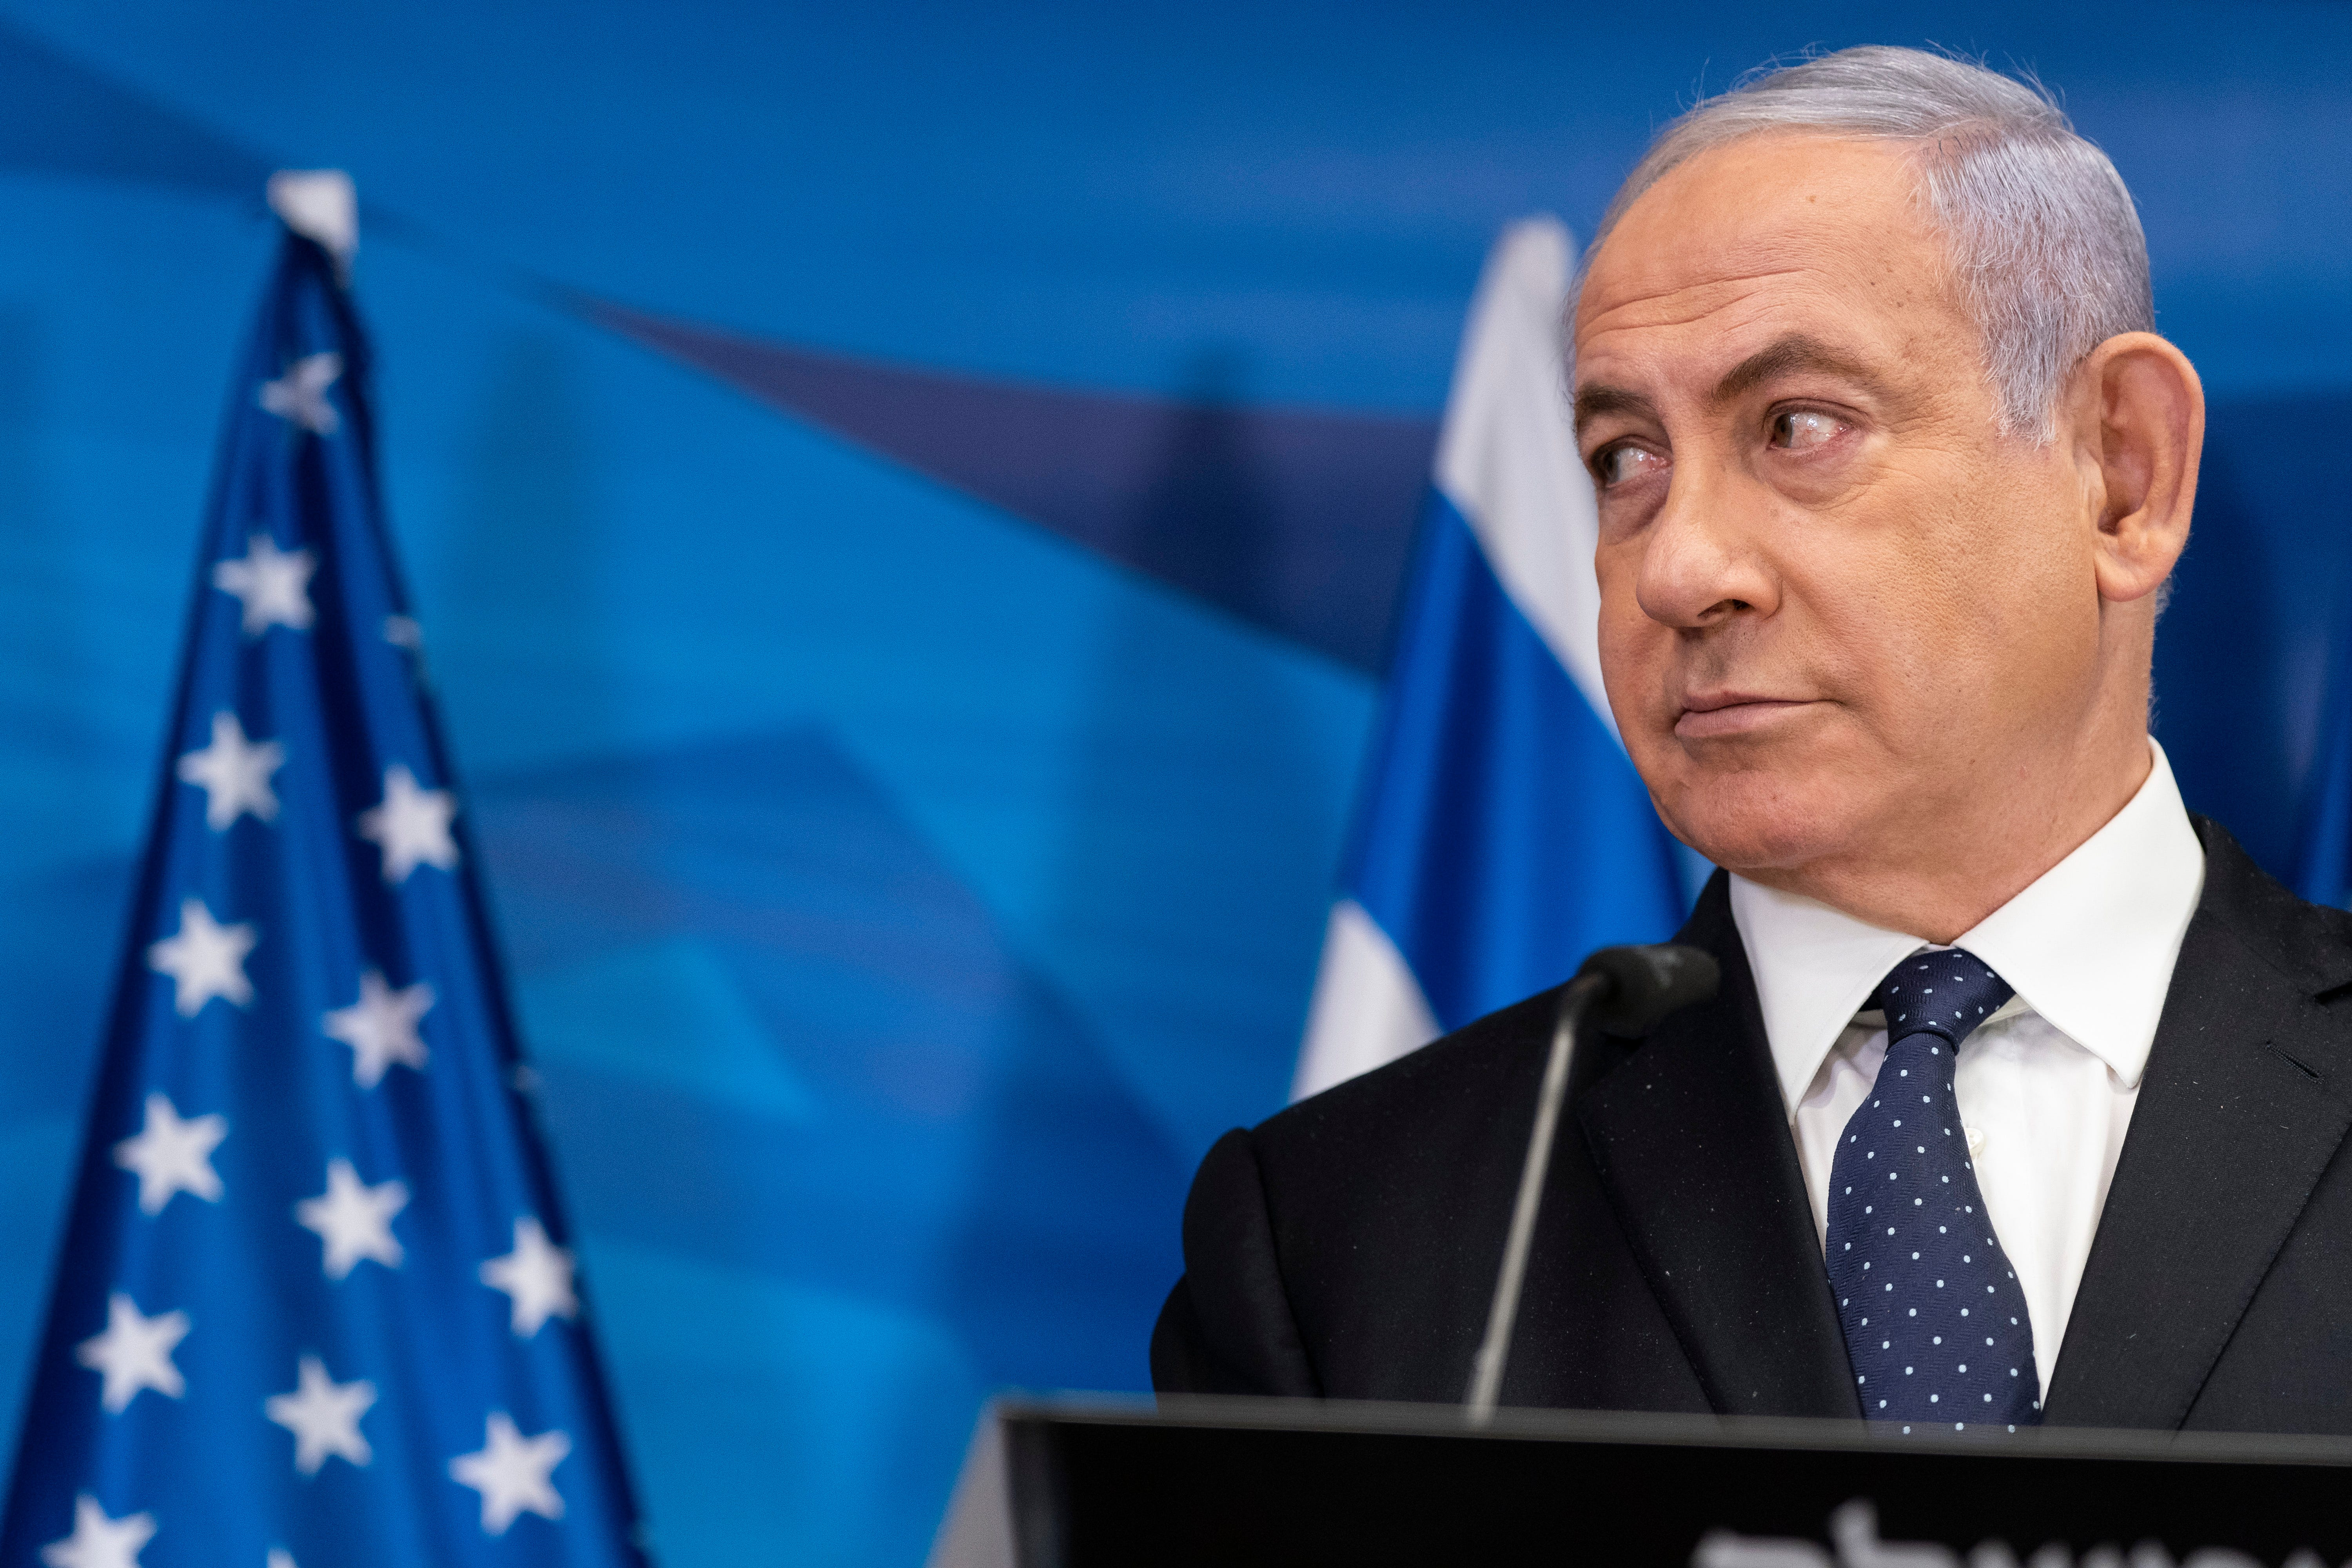 Israel's Netanyahu could lose PM job as rivals try to join forces 2